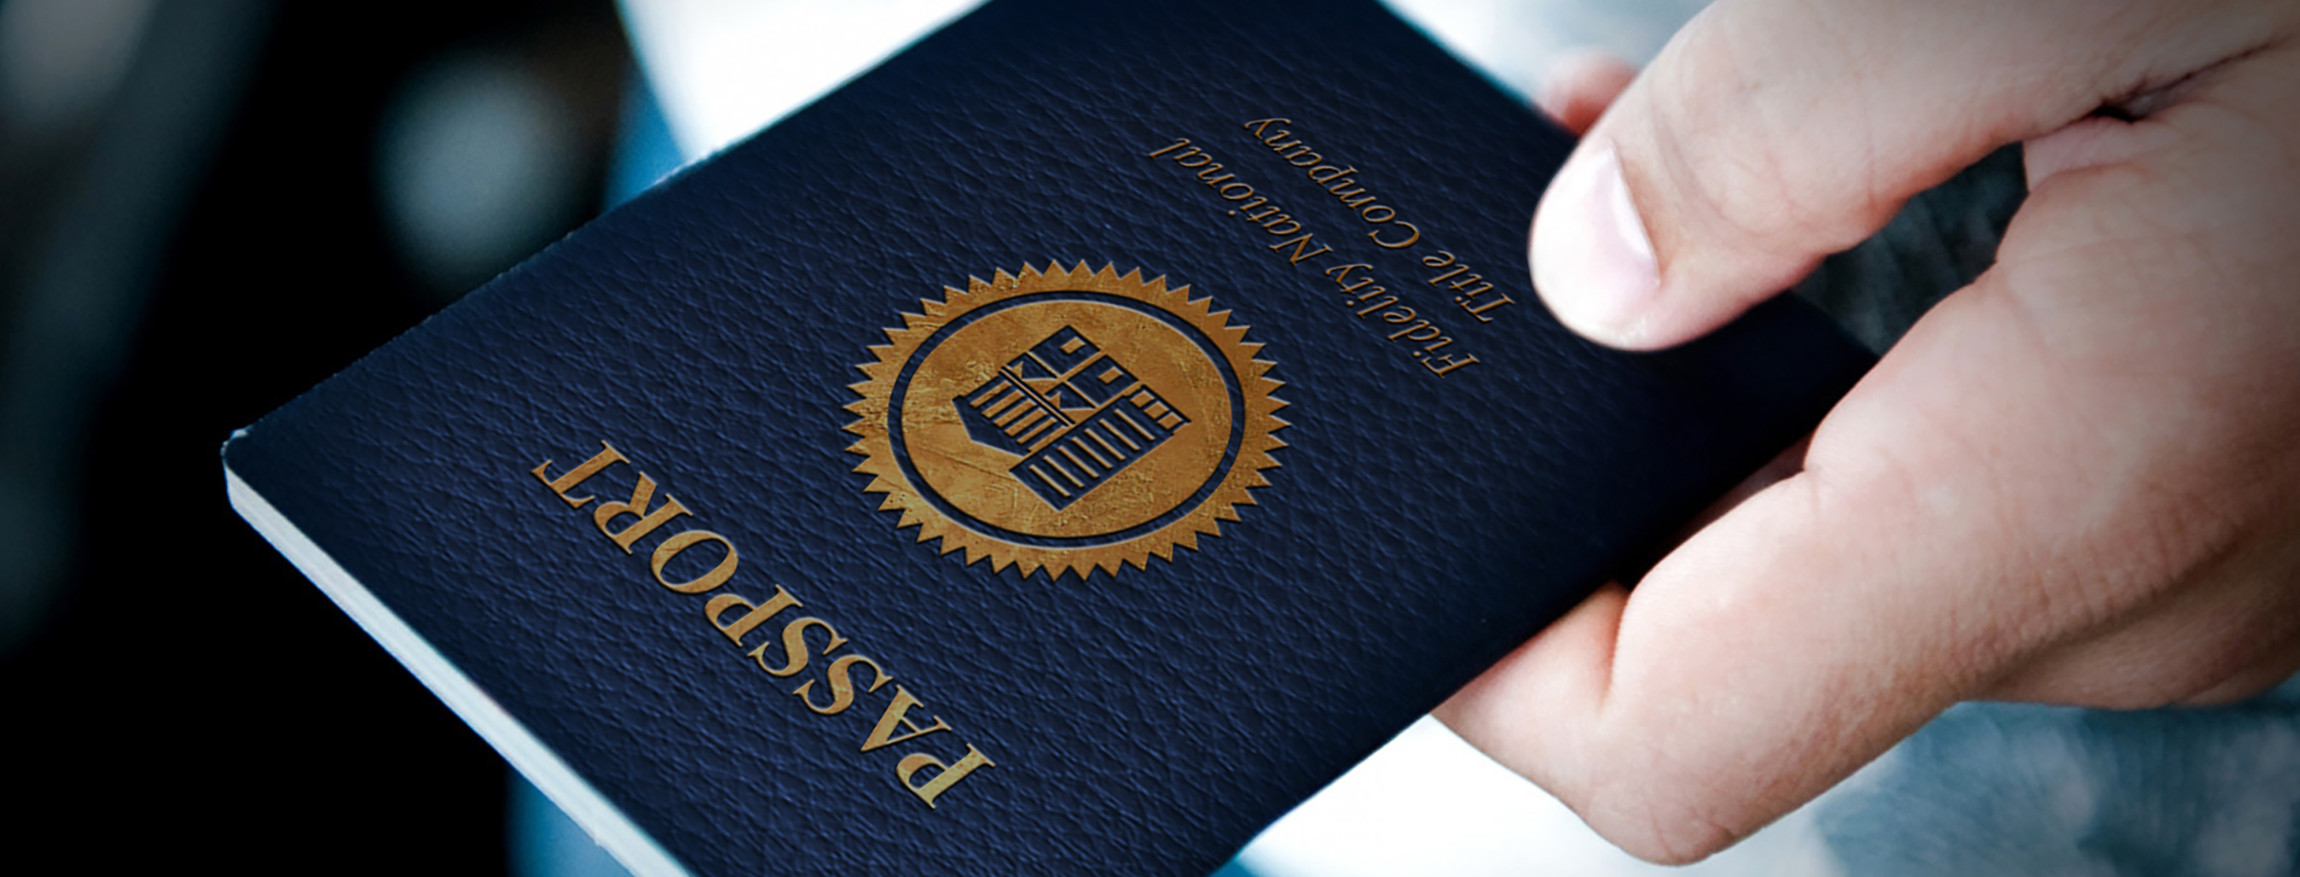 Fidelity OC Passport